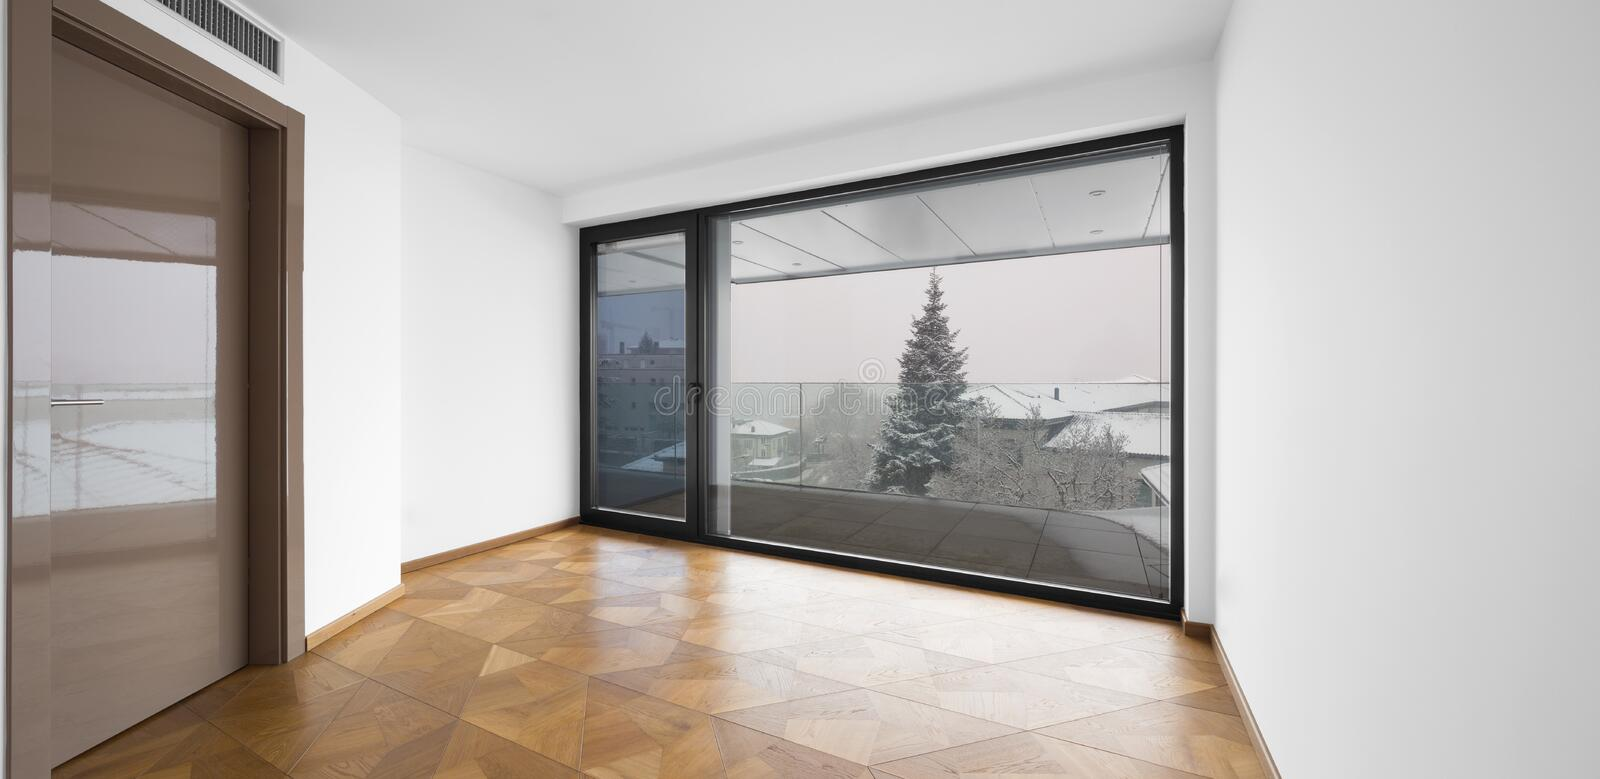 Empty room. It`s snowing outside. royalty free stock image